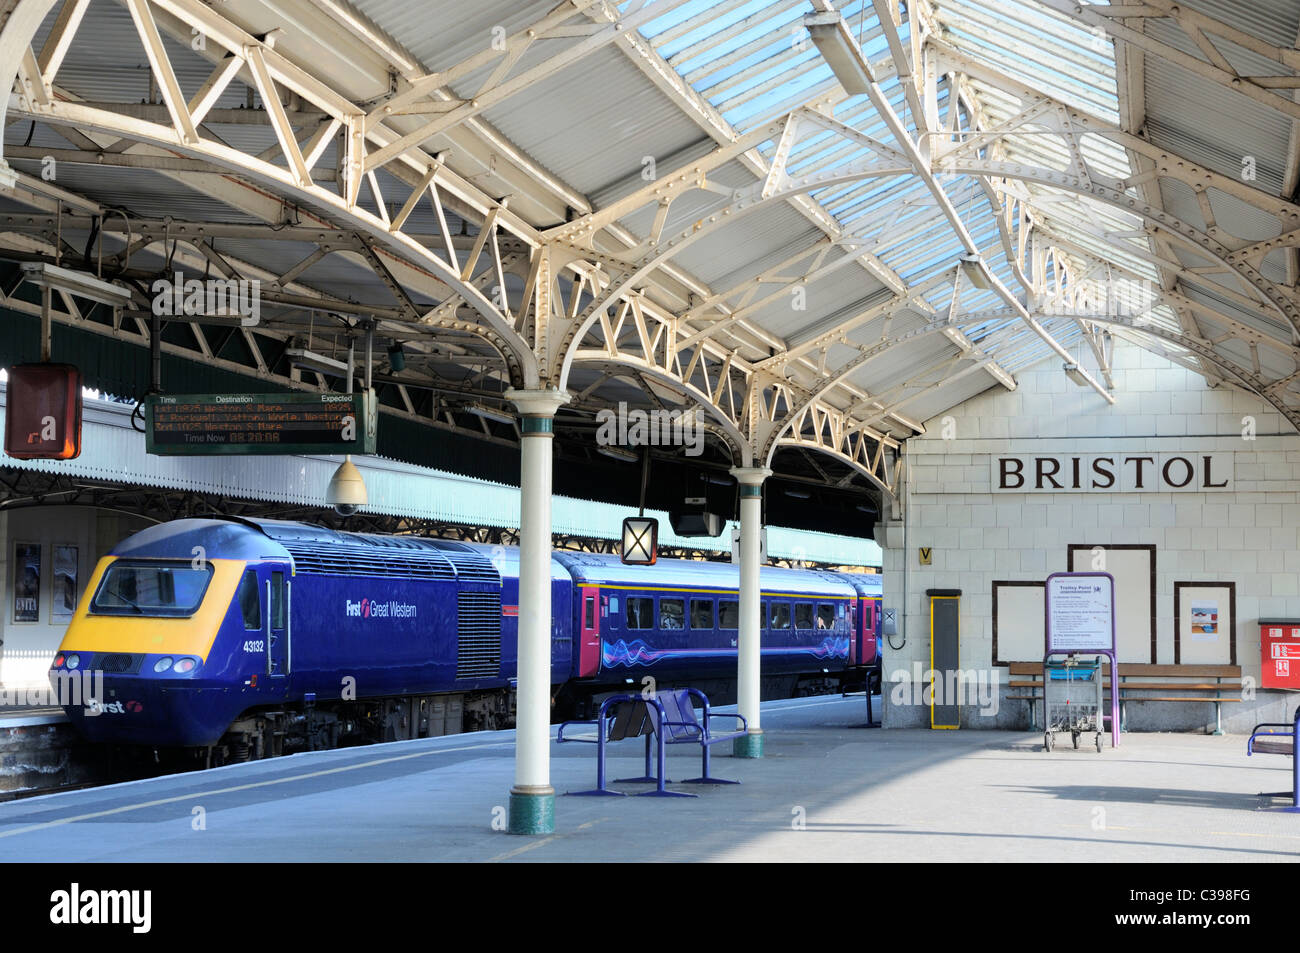 Bristol Temple meads railway station with a First great western HST service waiting at  a platform. Stock Photo